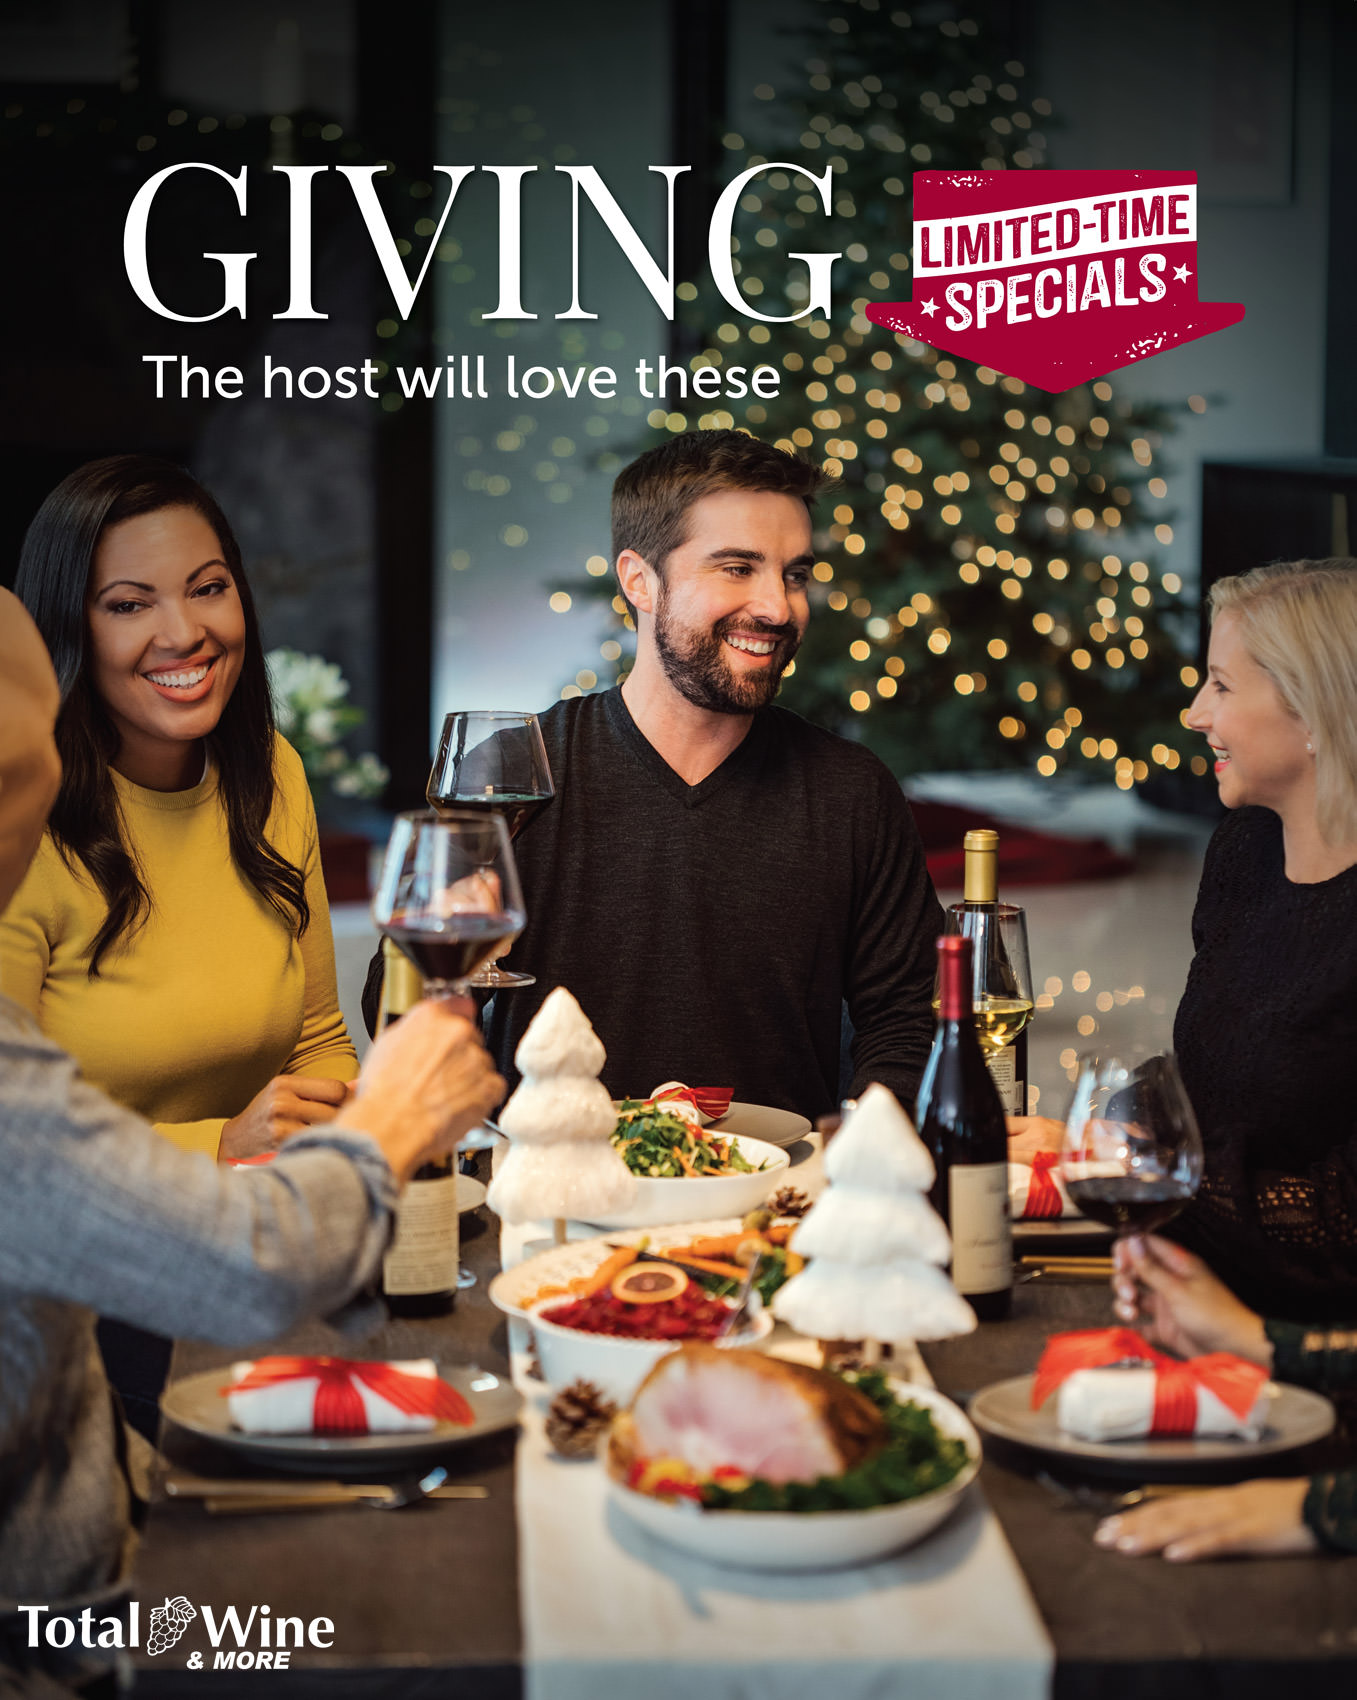 friends making toast at christmas dinner for total wine & more advertisement, washington dc commercial photography